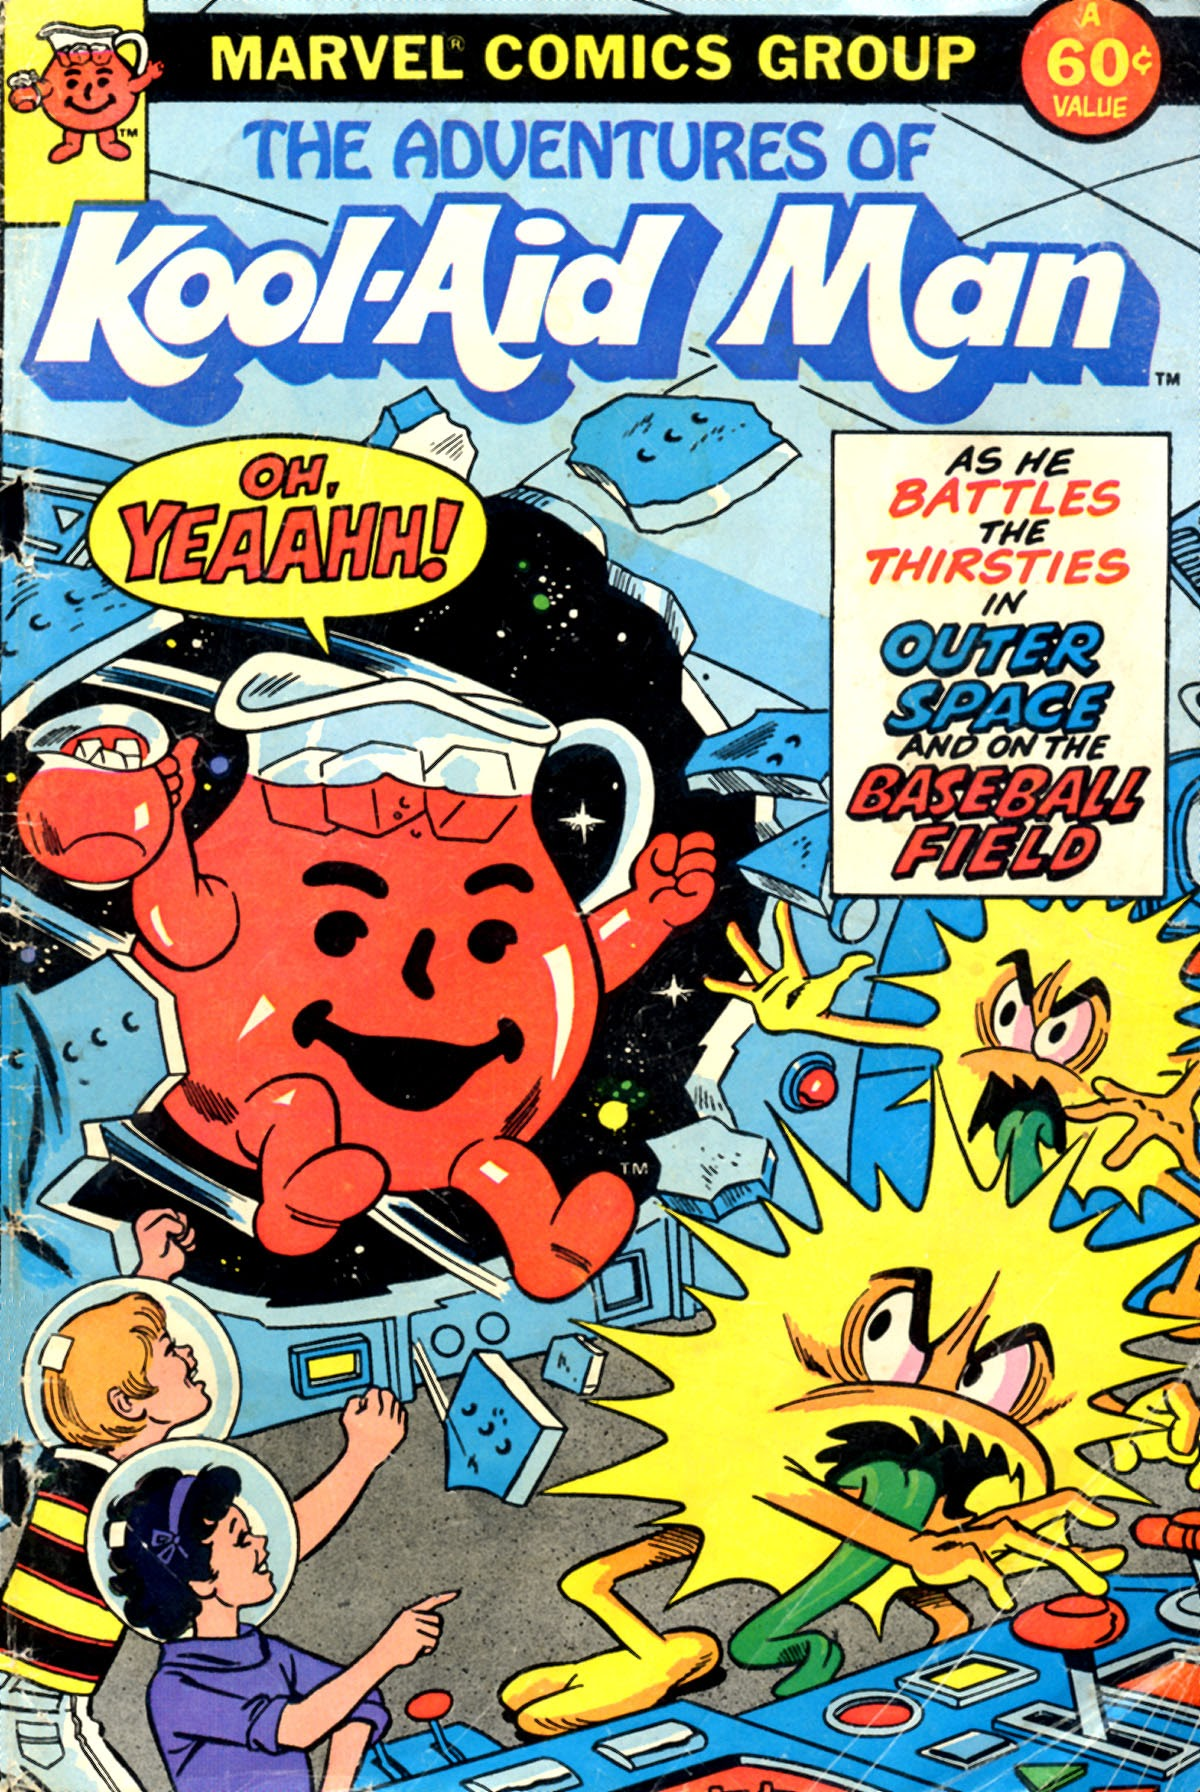 The Adventures of Kool-Aid Man 1 Page 1